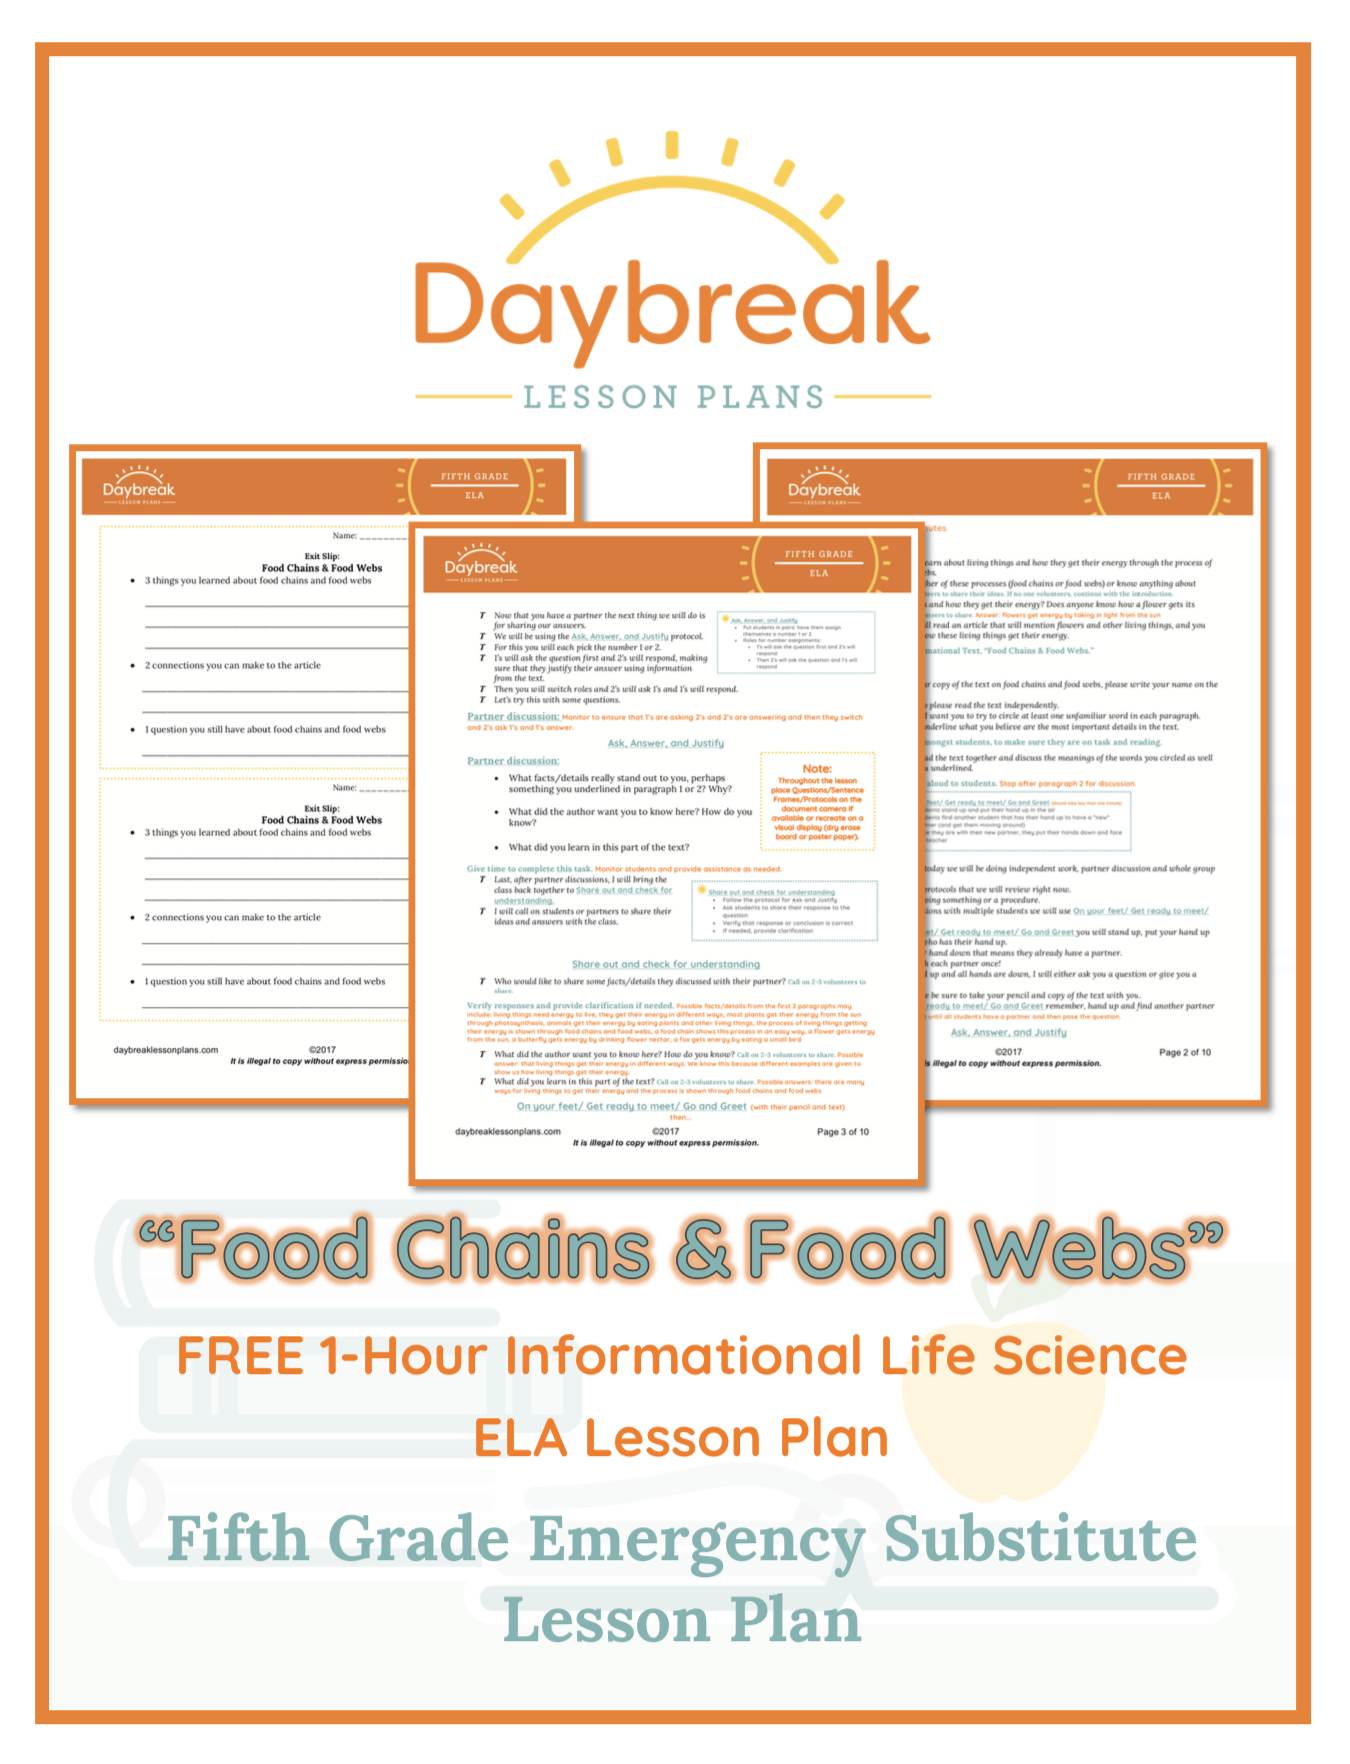 Illustration of the free 5th Grade ELA lesson plan covers